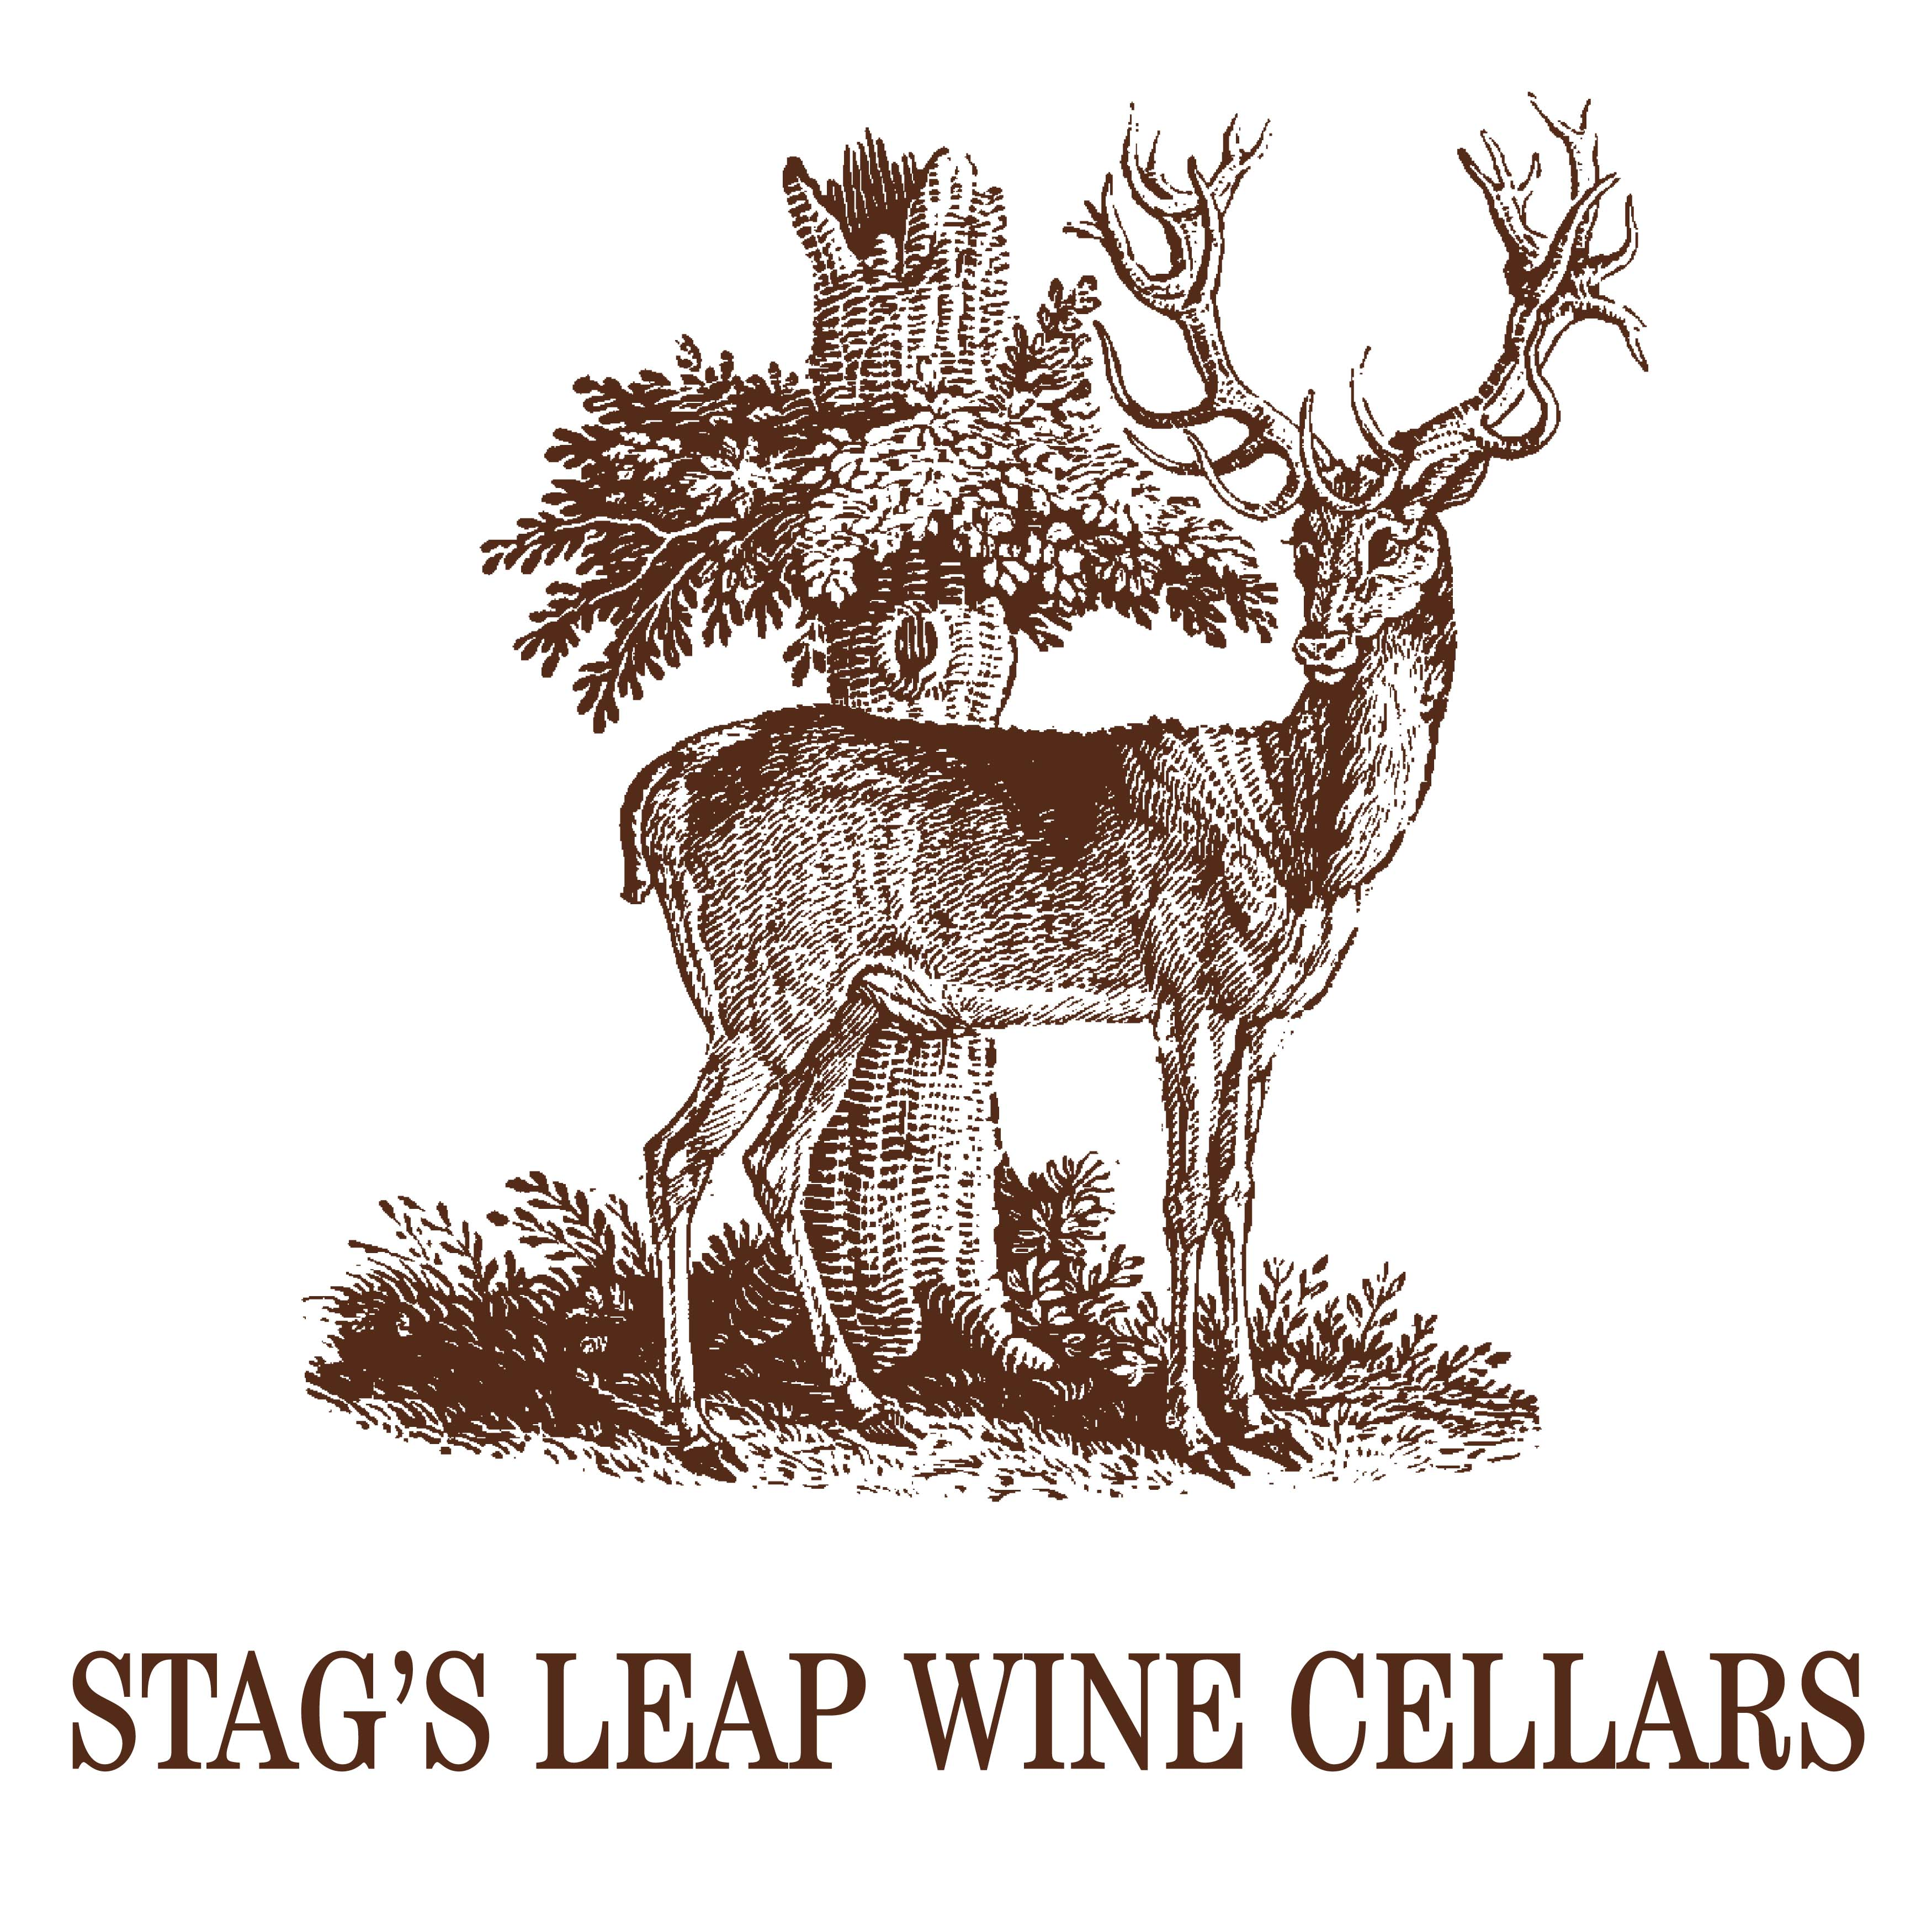 stags leap wine cellars slwc logo 2